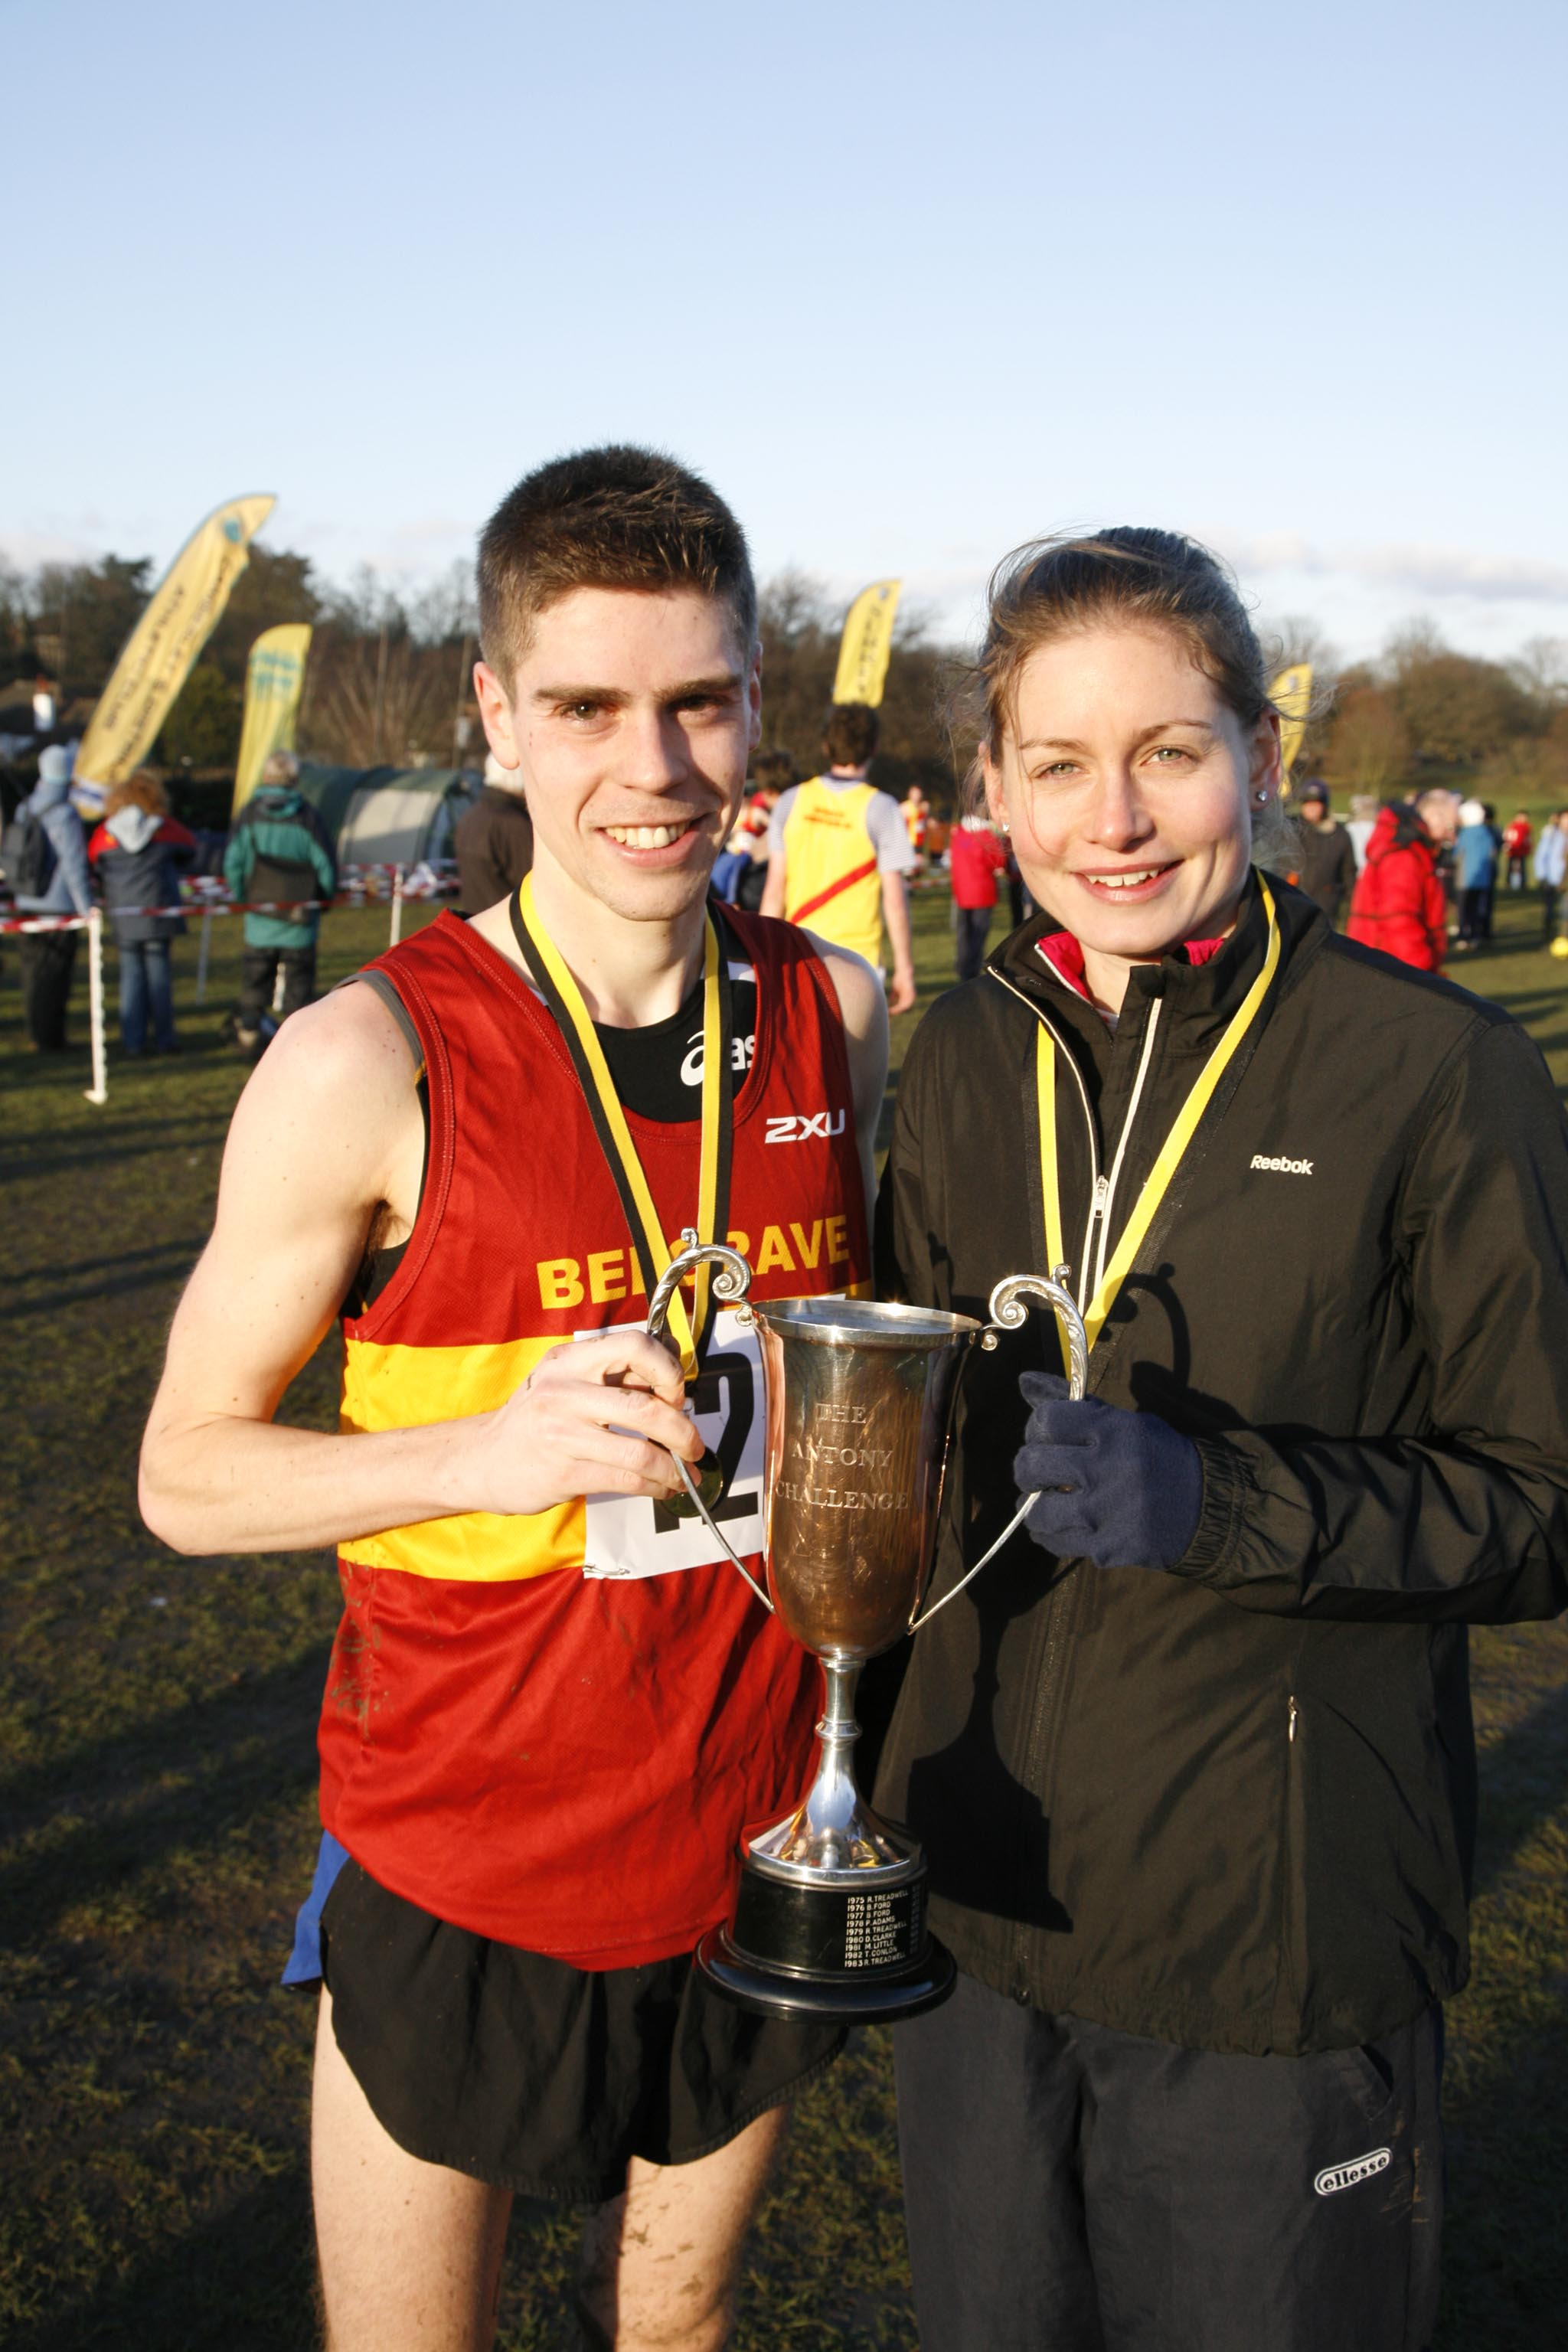 City slickers: Phil Wicks, left, and Emily Wicks winning Surrey Cross Country Championship gold earlier in their careers